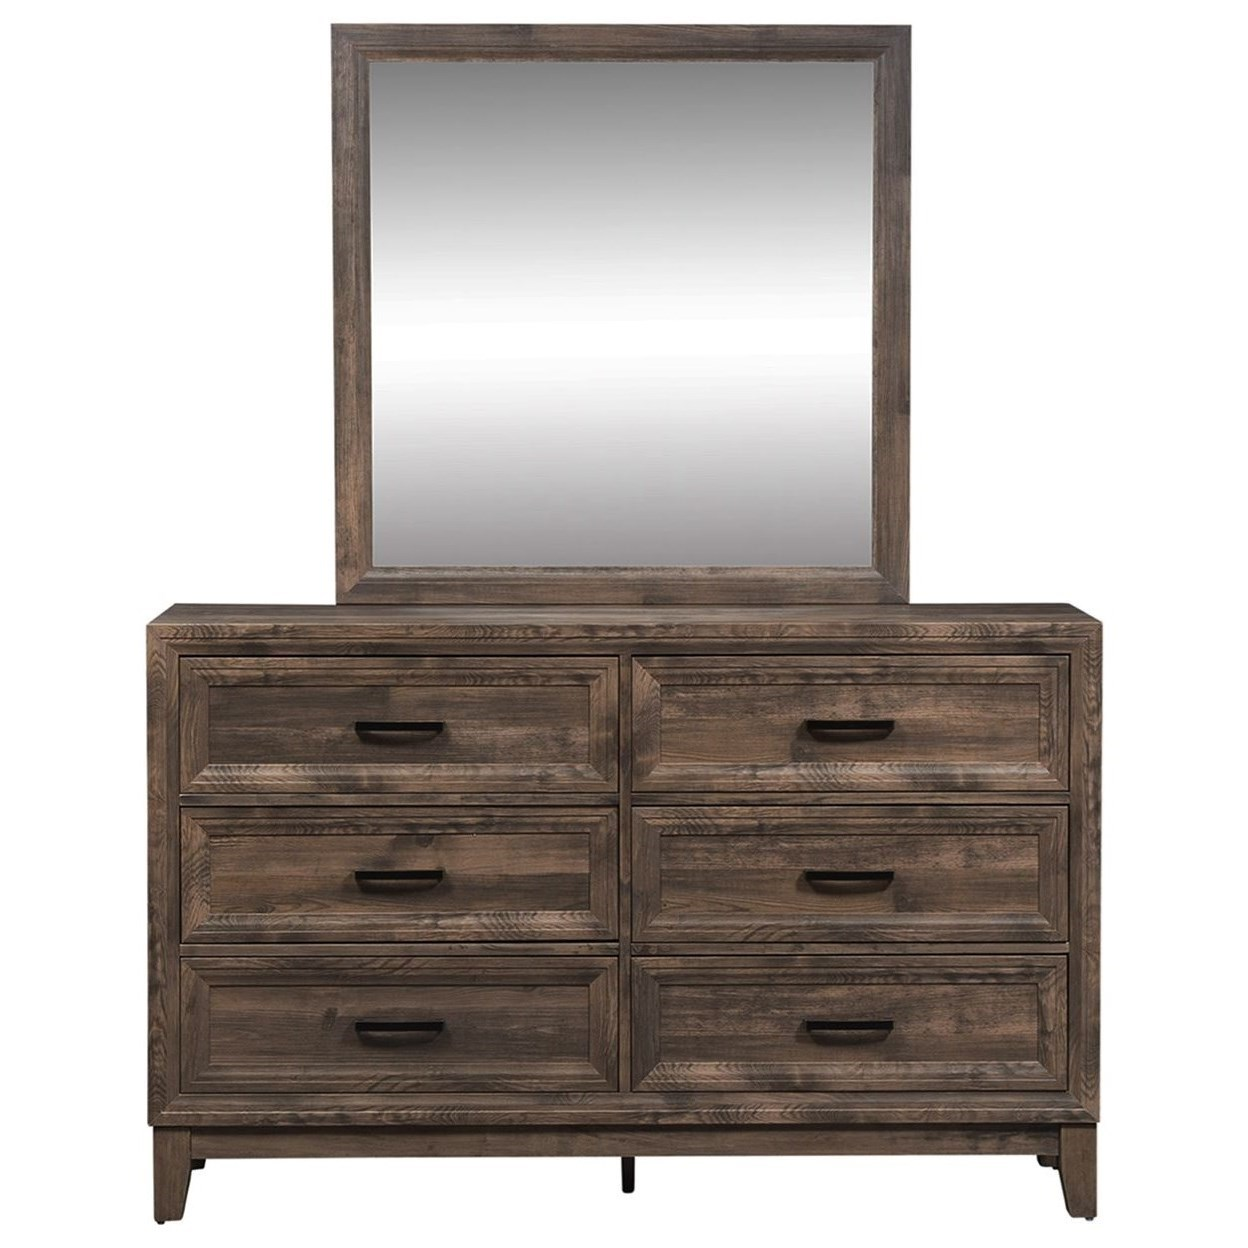 Ridgecrest Dresser and Mirror Set by Liberty Furniture at Standard Furniture